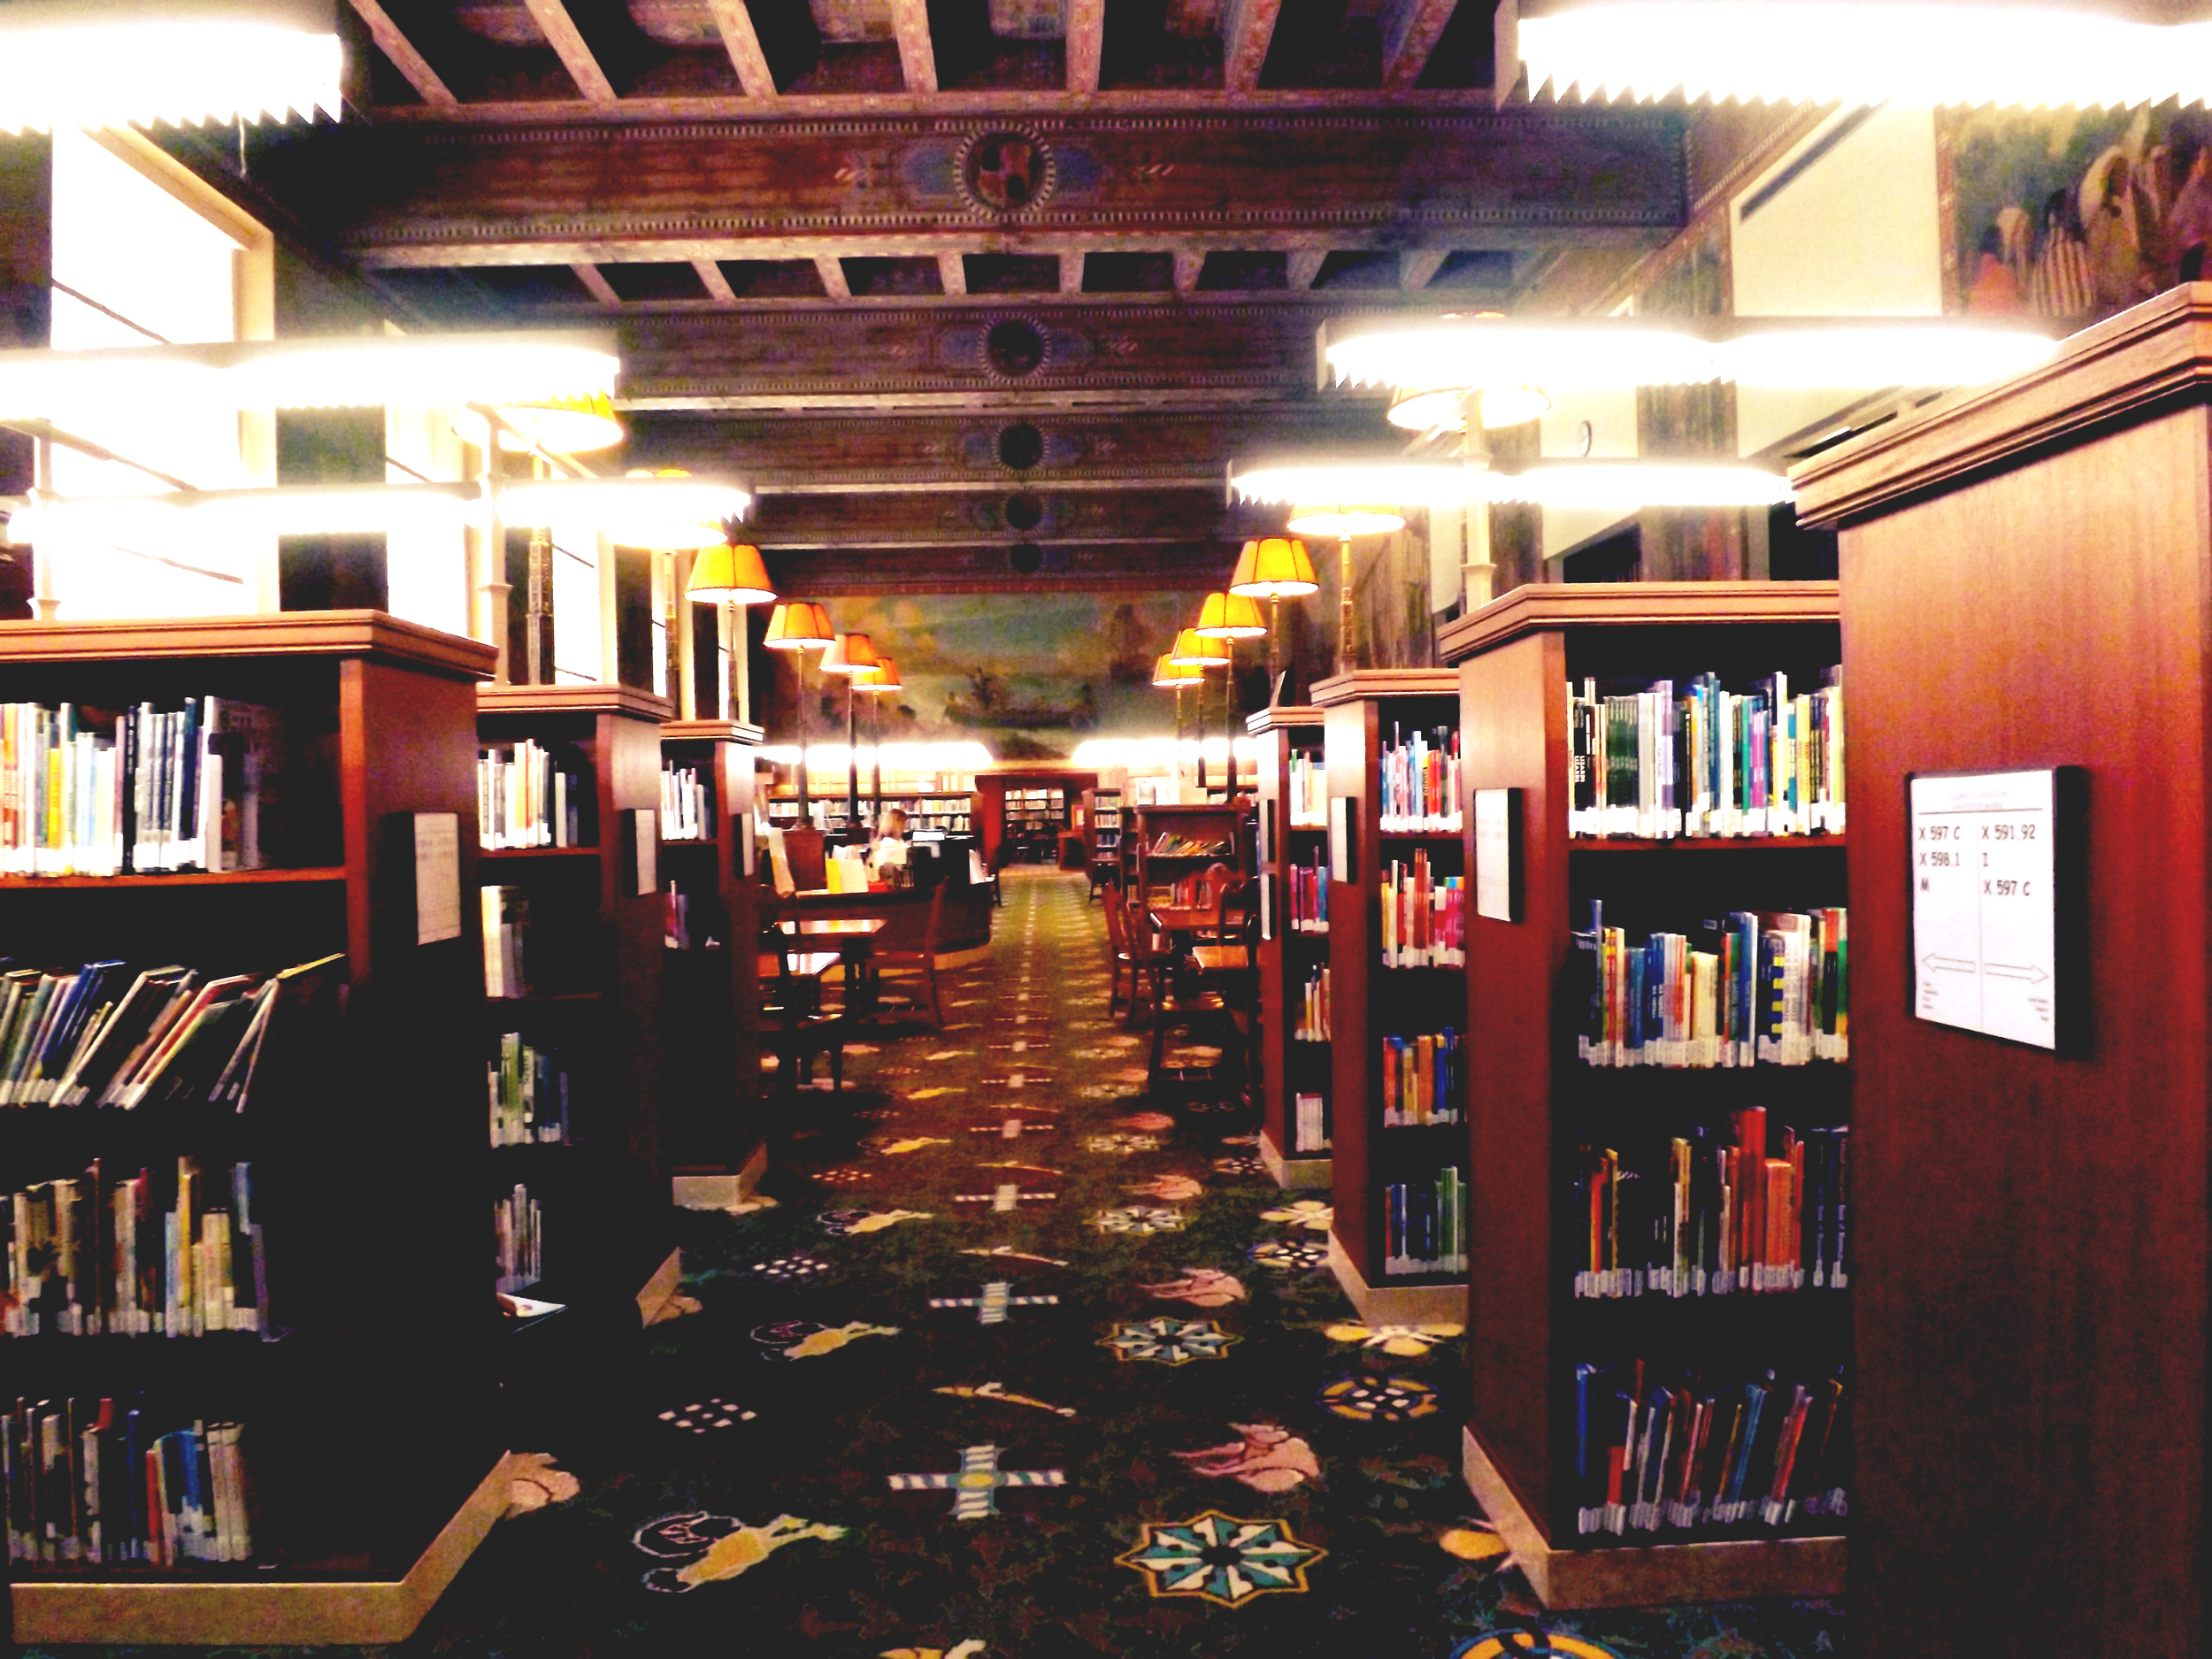 One of the many shelving areas where miles of aisles are worthy of getting lost within. Stem